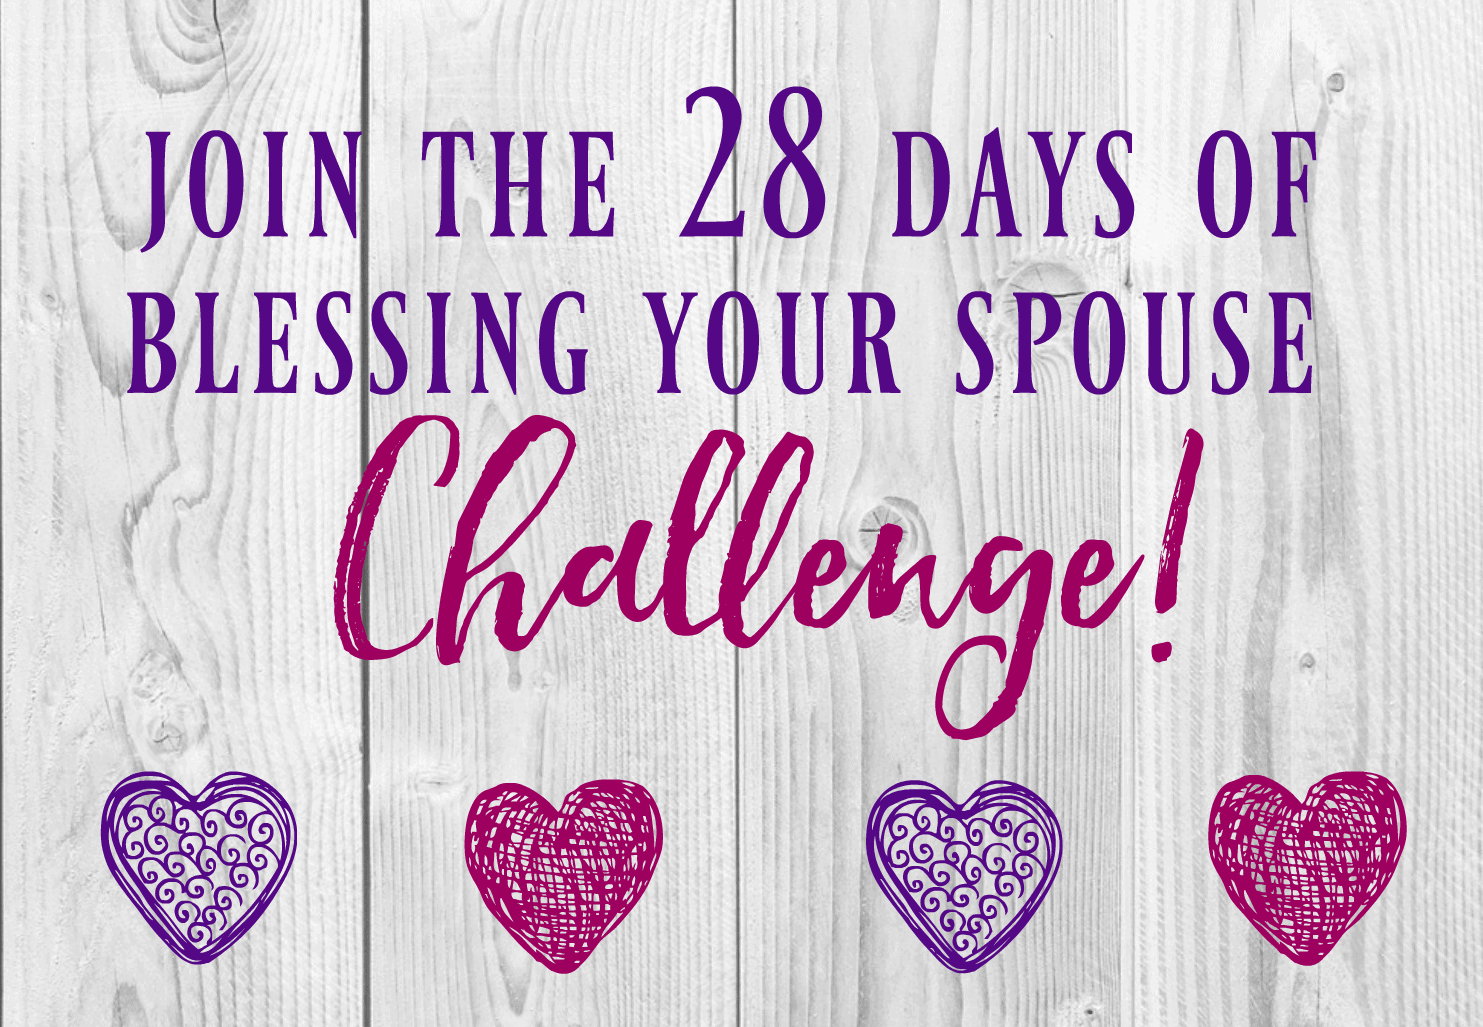 Take the 28 Days of Blessing Your Spouse Challenge & watch your marriage bloom!